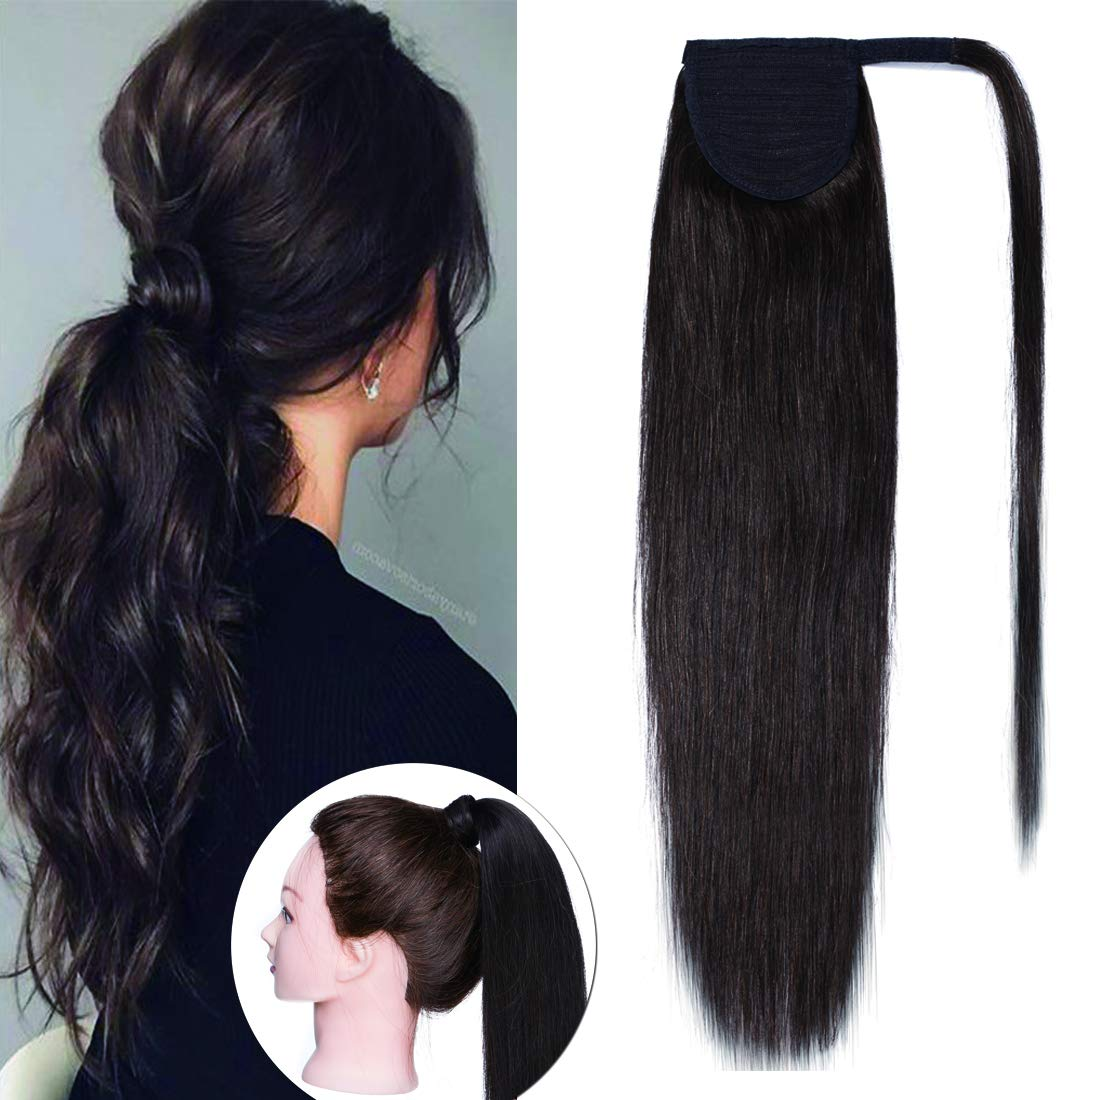 SEGO Wrap Around Ponytail Hair Extensions Human Hair Long Straight 100% Real Remy Hair Pony Tails Hair Extensions For Women #02 Dark Brown 14 inches 70g by SEGO